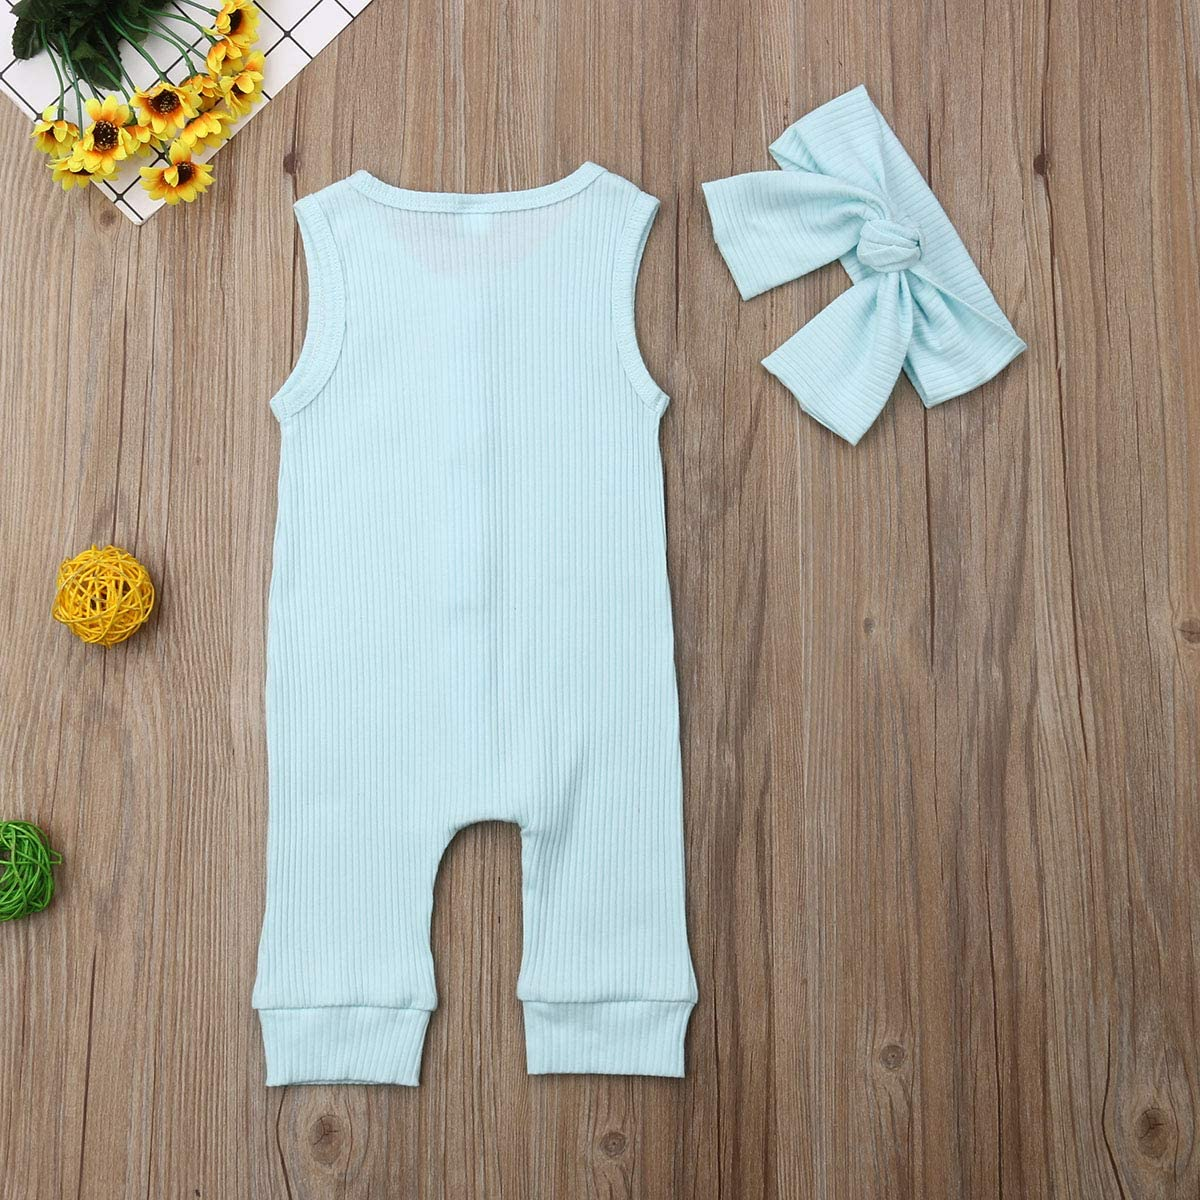 Baby Girl Boy Romper Bodysuit Solid Plain One Piece Jumpsuits Pajamas Sleeveless One Piece Baby Clothes Outfits Summer